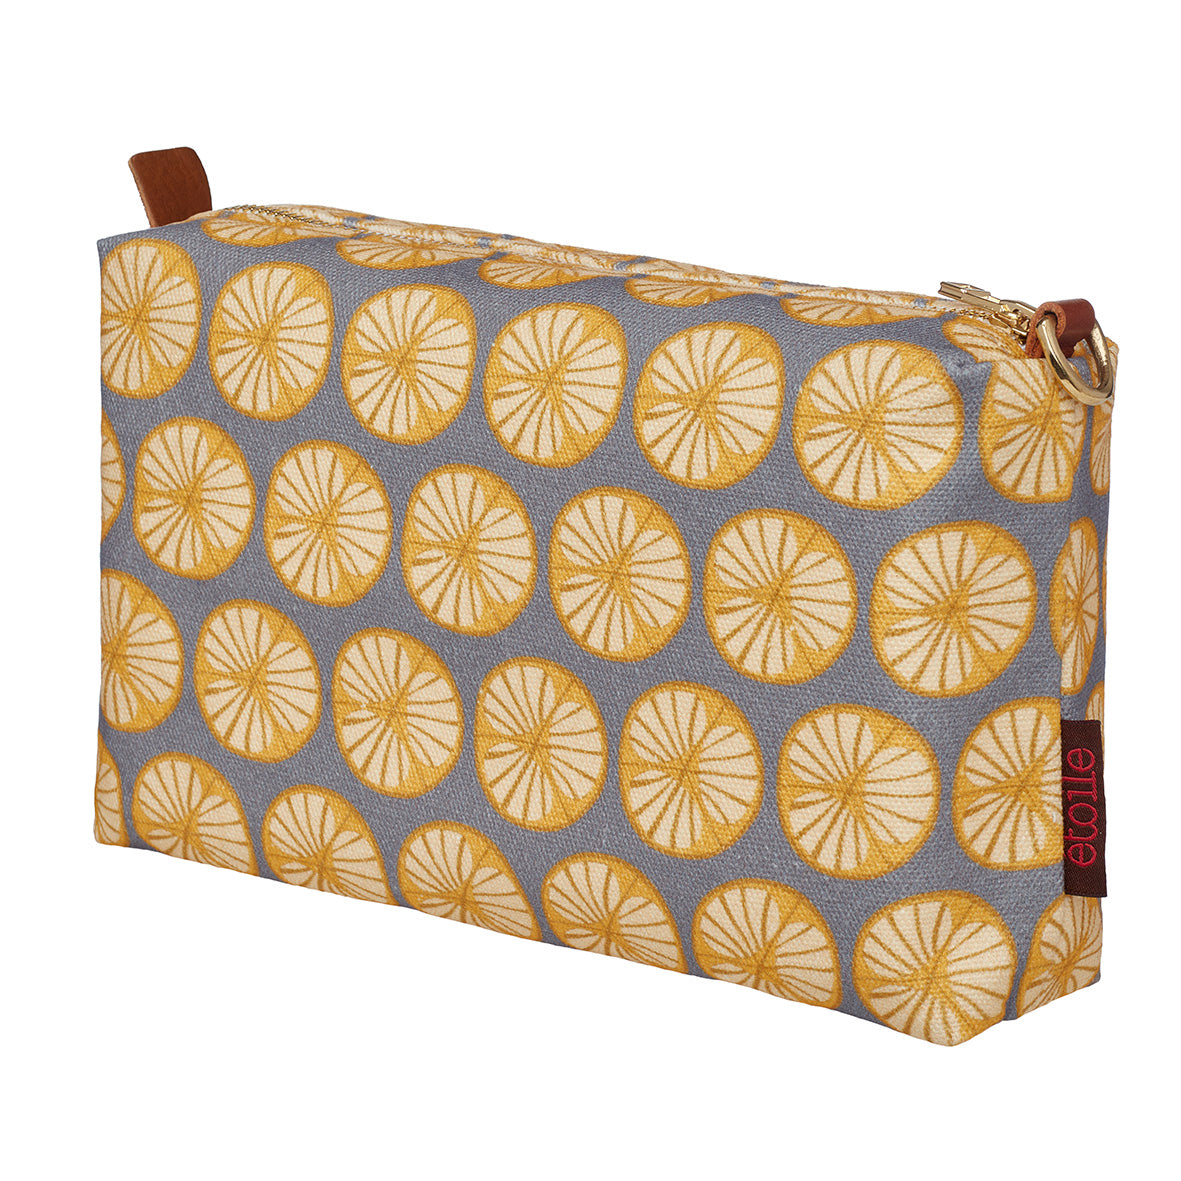 Graphic Cross Section of a Fruit Pattern Printed Cotton Canvas Toiletry Travel Bag in Light Dove Grey and Saffron Yellow Ships from Canada Perfect for shaving, cosmetics and wash kit (USA)